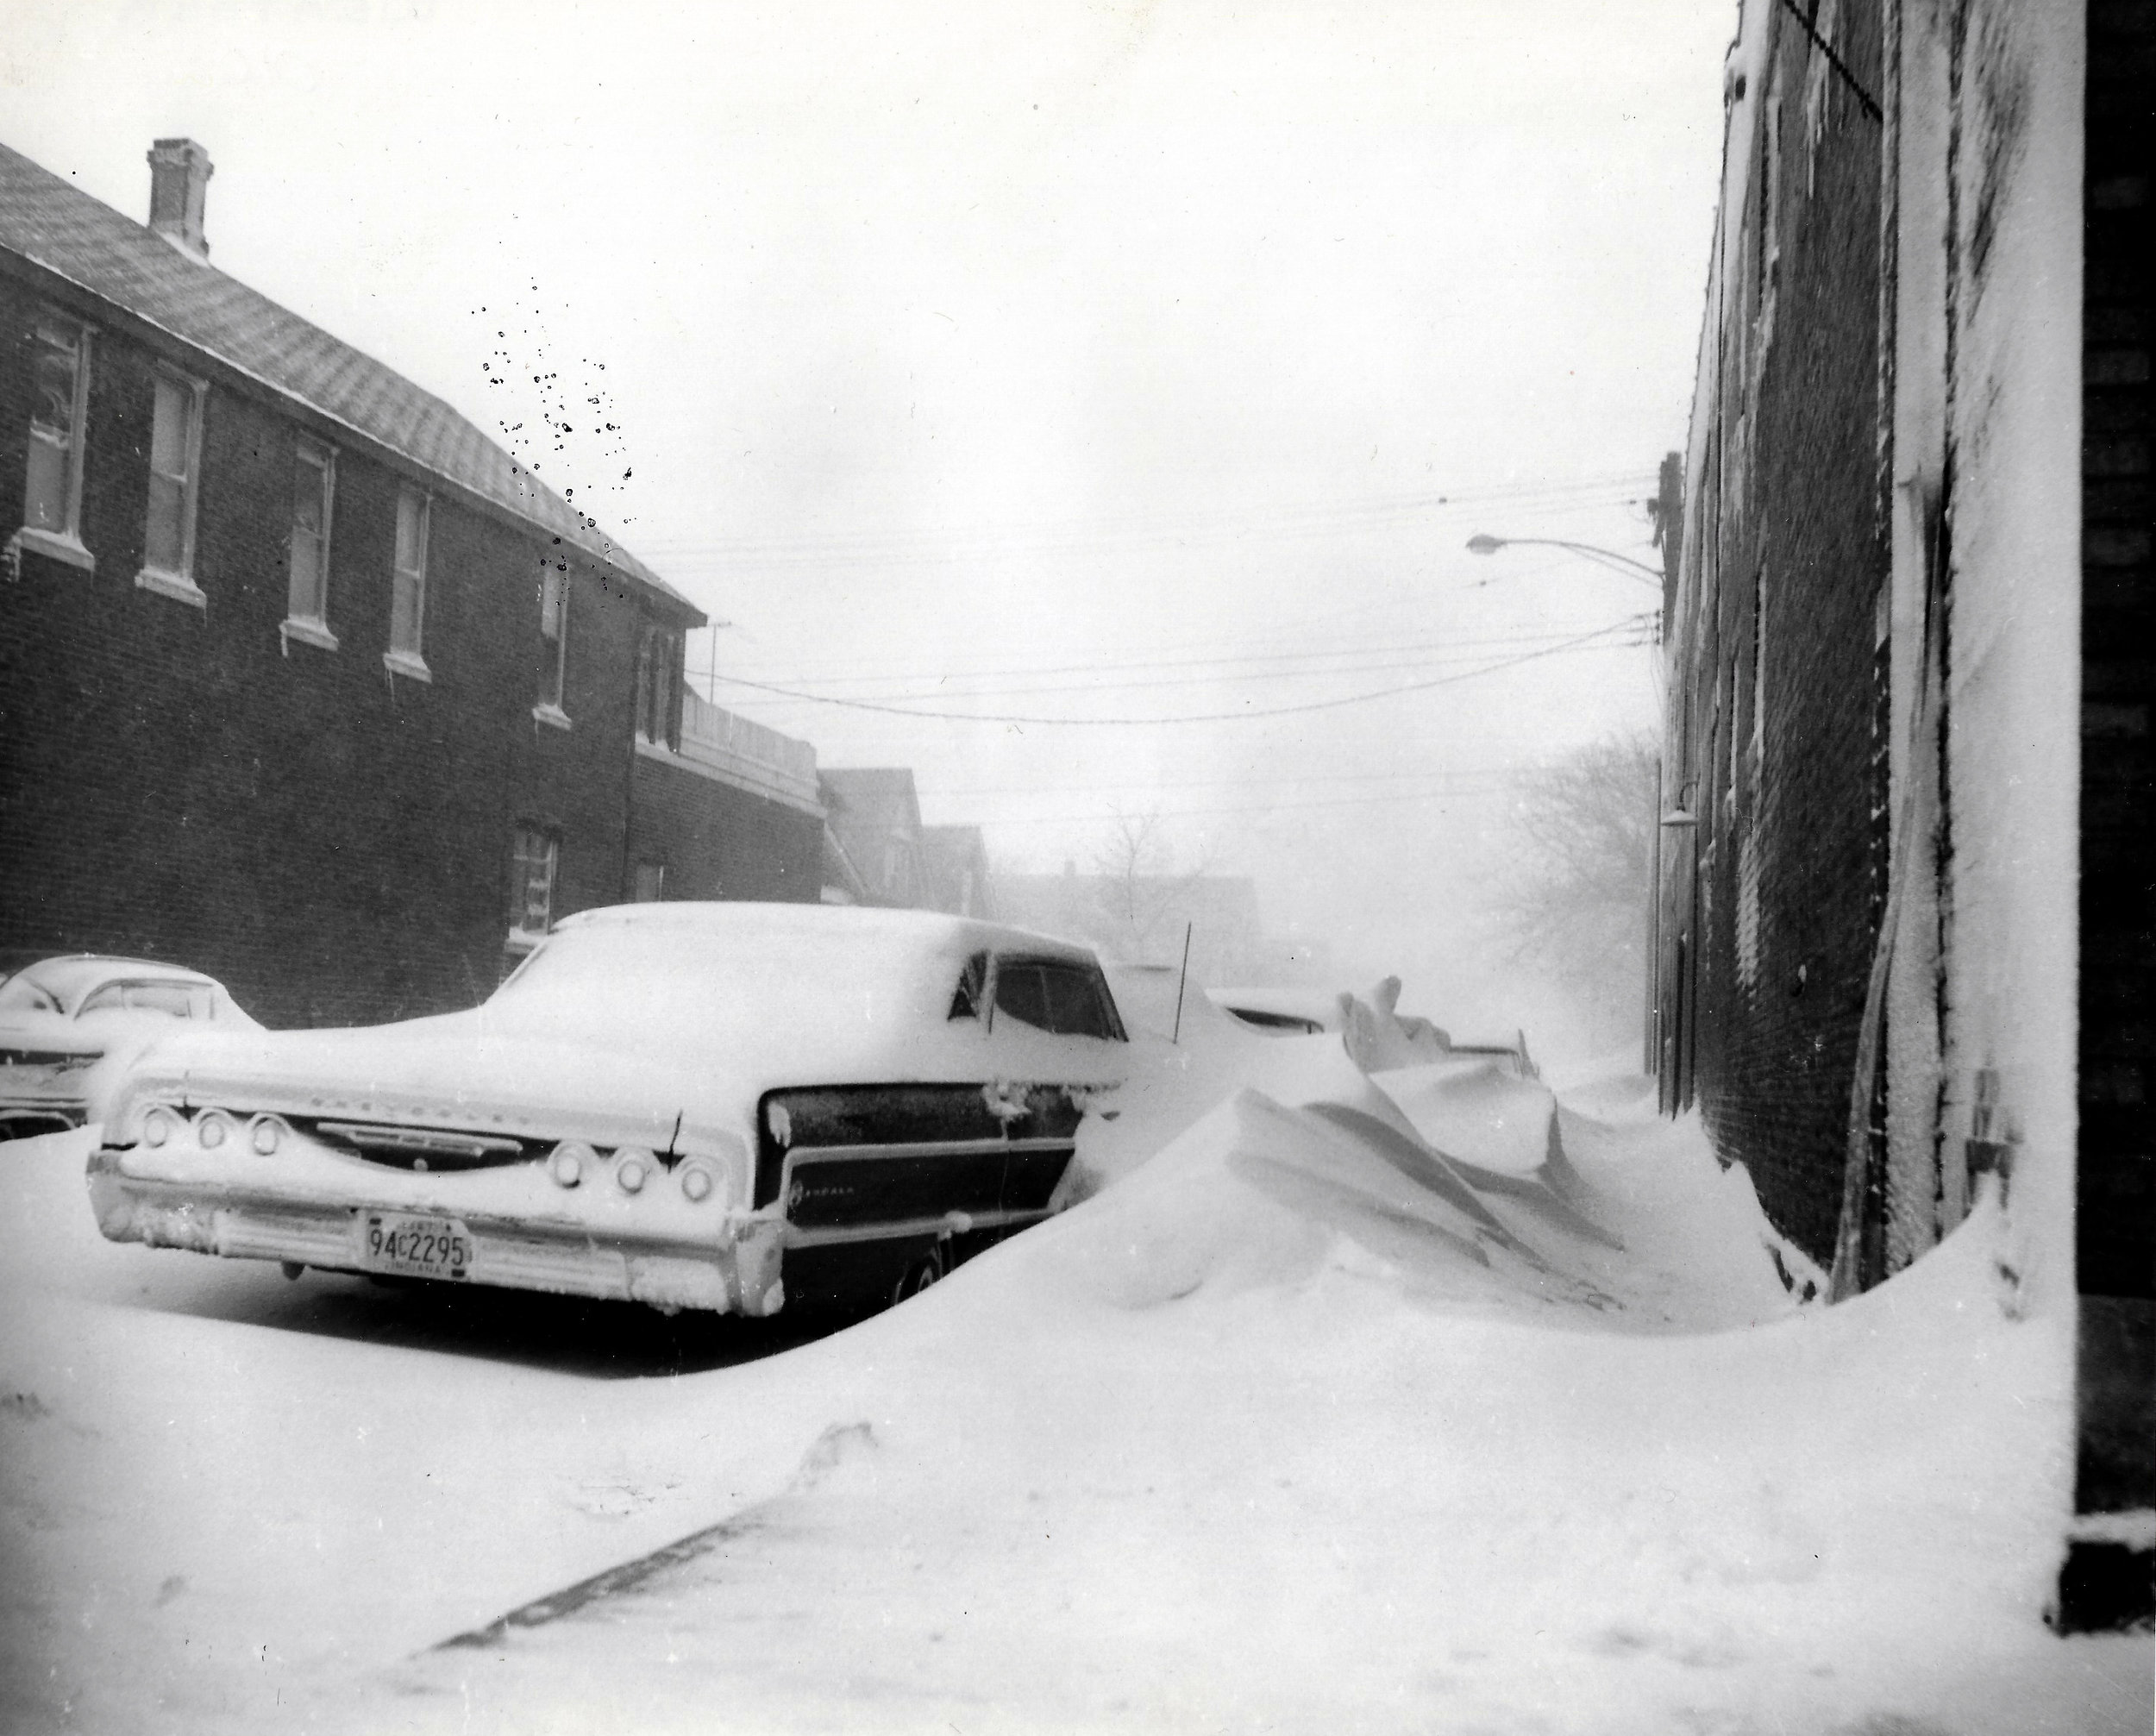 Drifts piled up alongside cars on all Whiting-Robertsdale streets, burying them for several days.